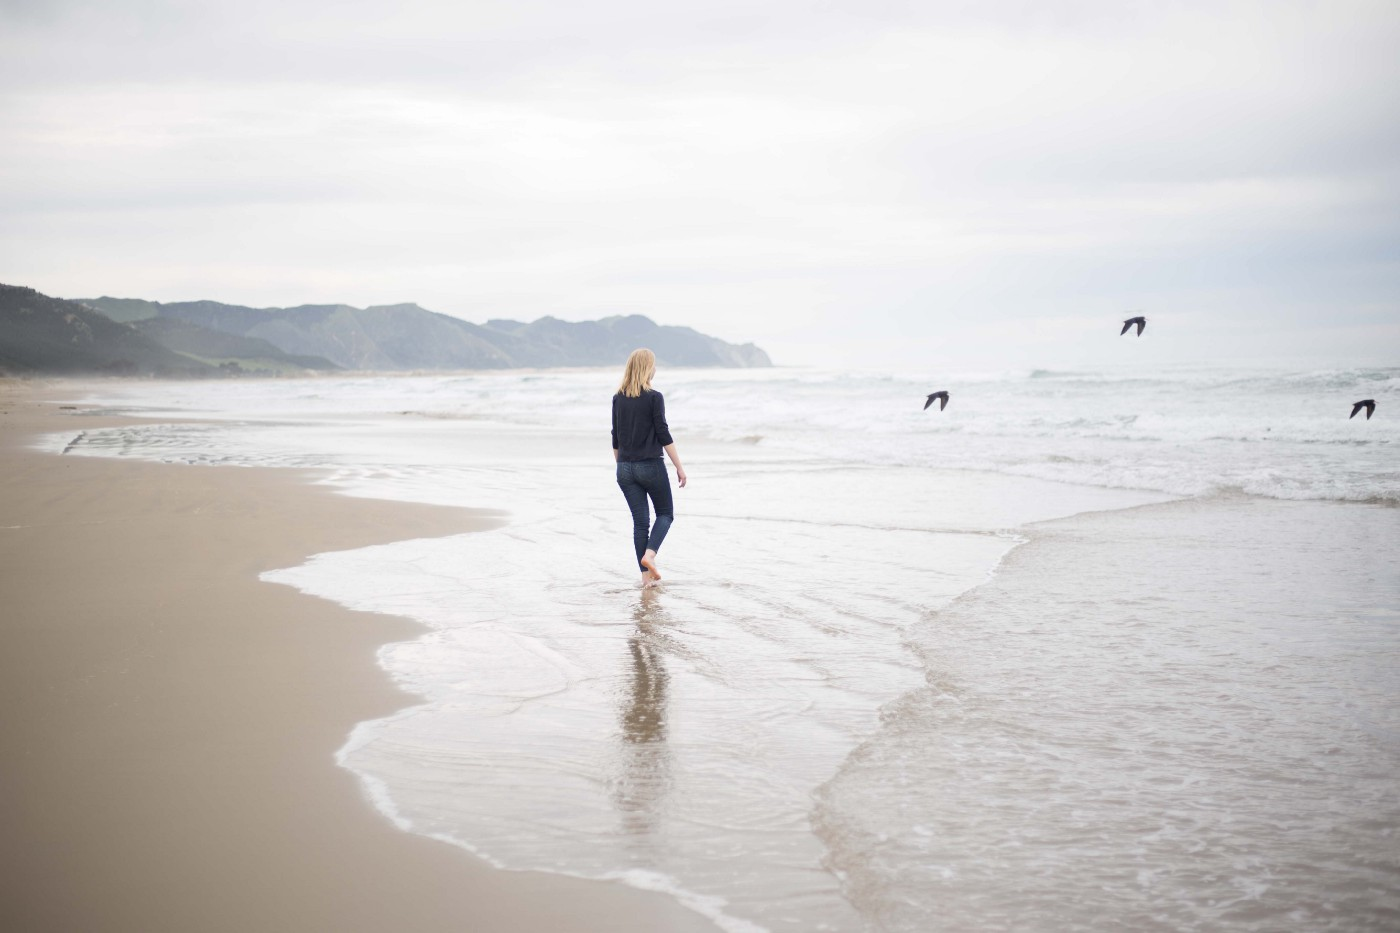 A young woman walking on the beach, and watching birds flying away